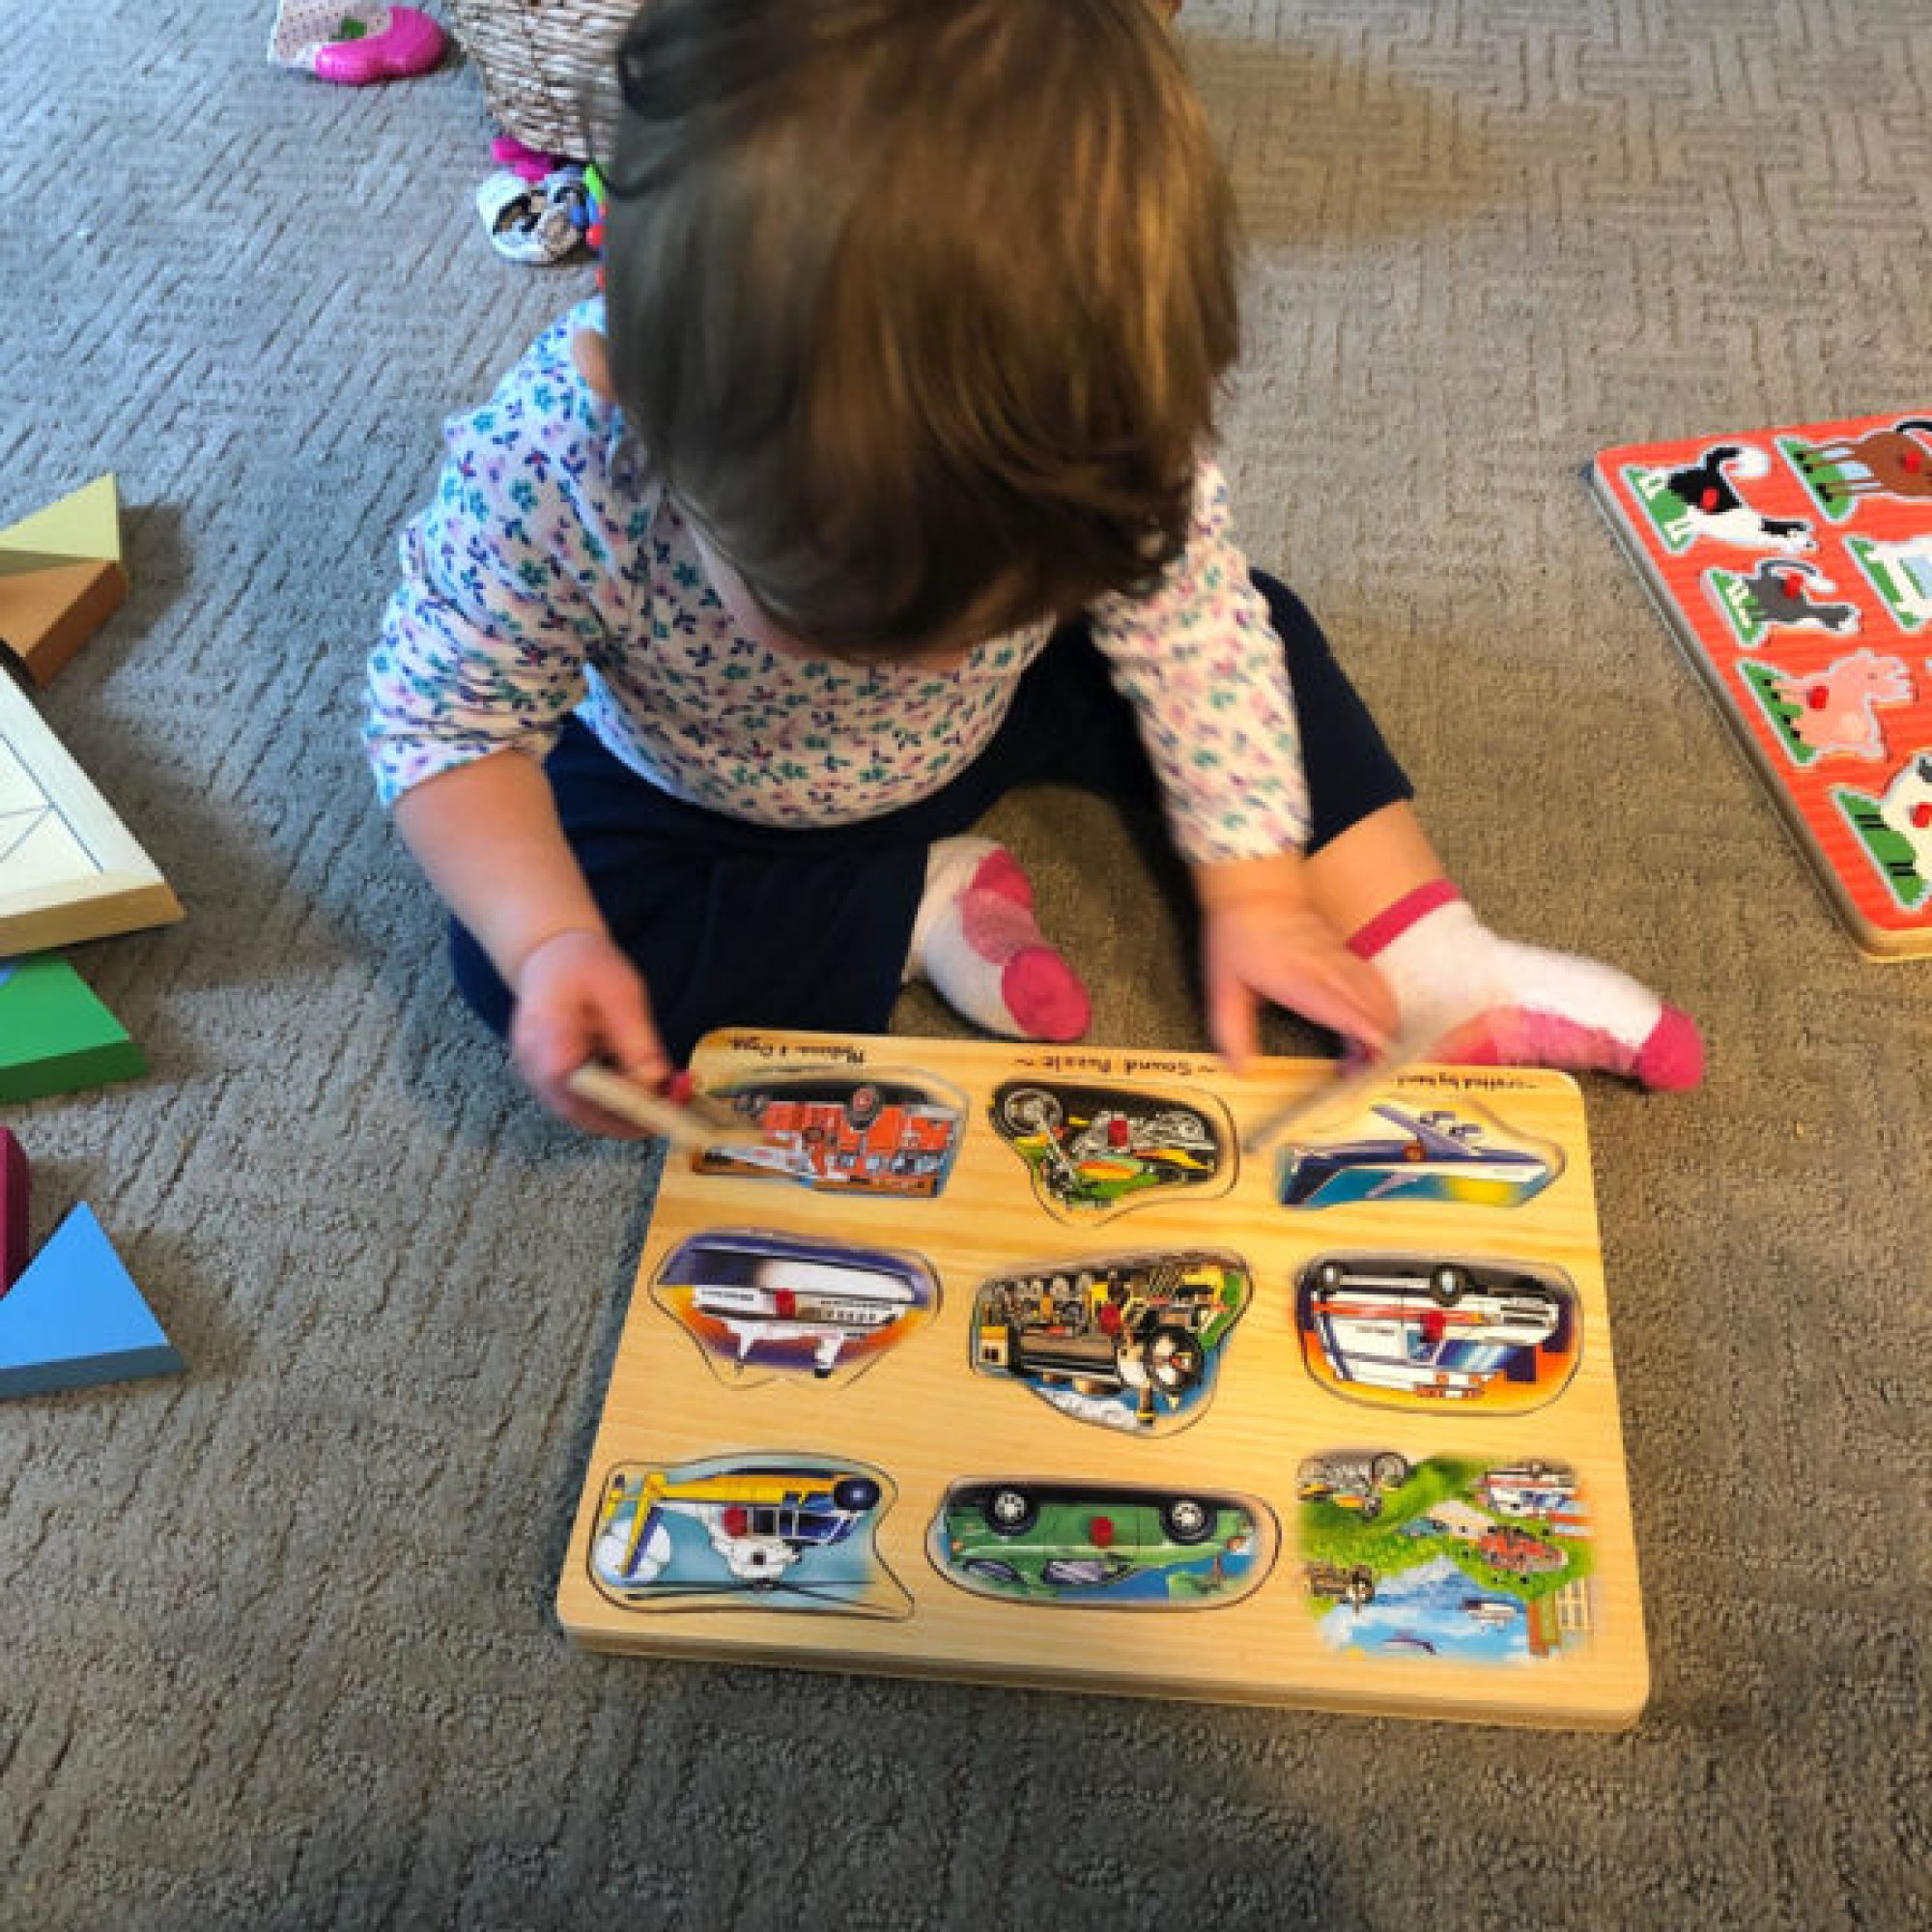 Baby doing puzzle to improve fine motor skills